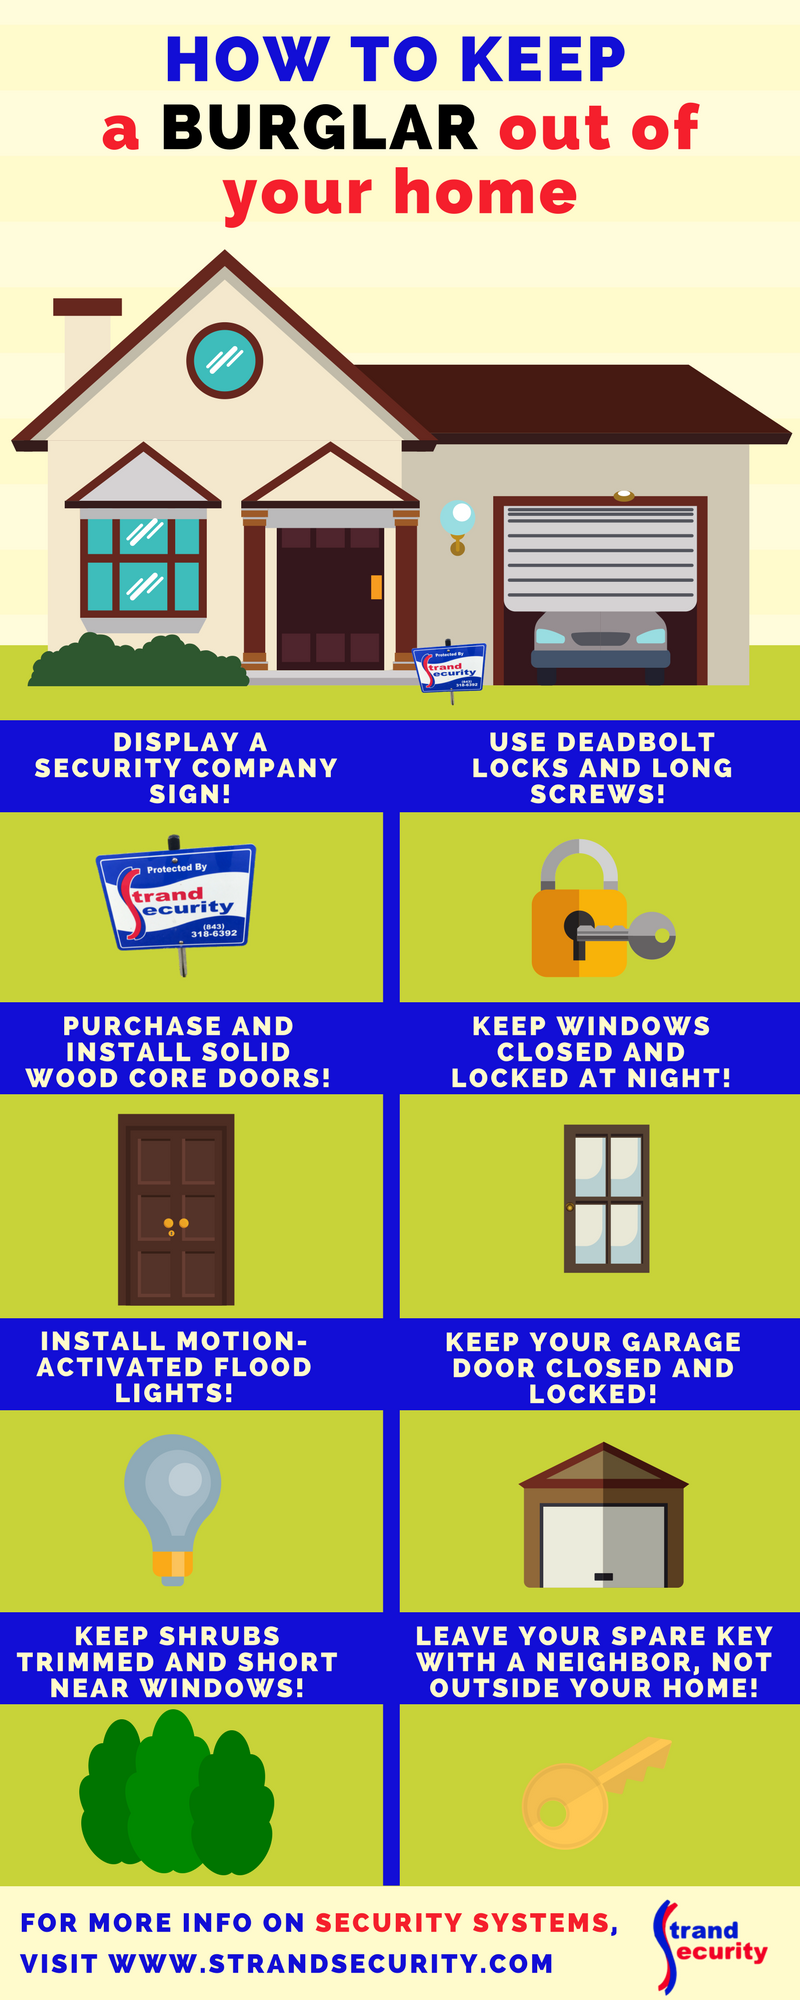 How To Keep A Burglar Out Of Your Home! Myrtle Beach Infographic